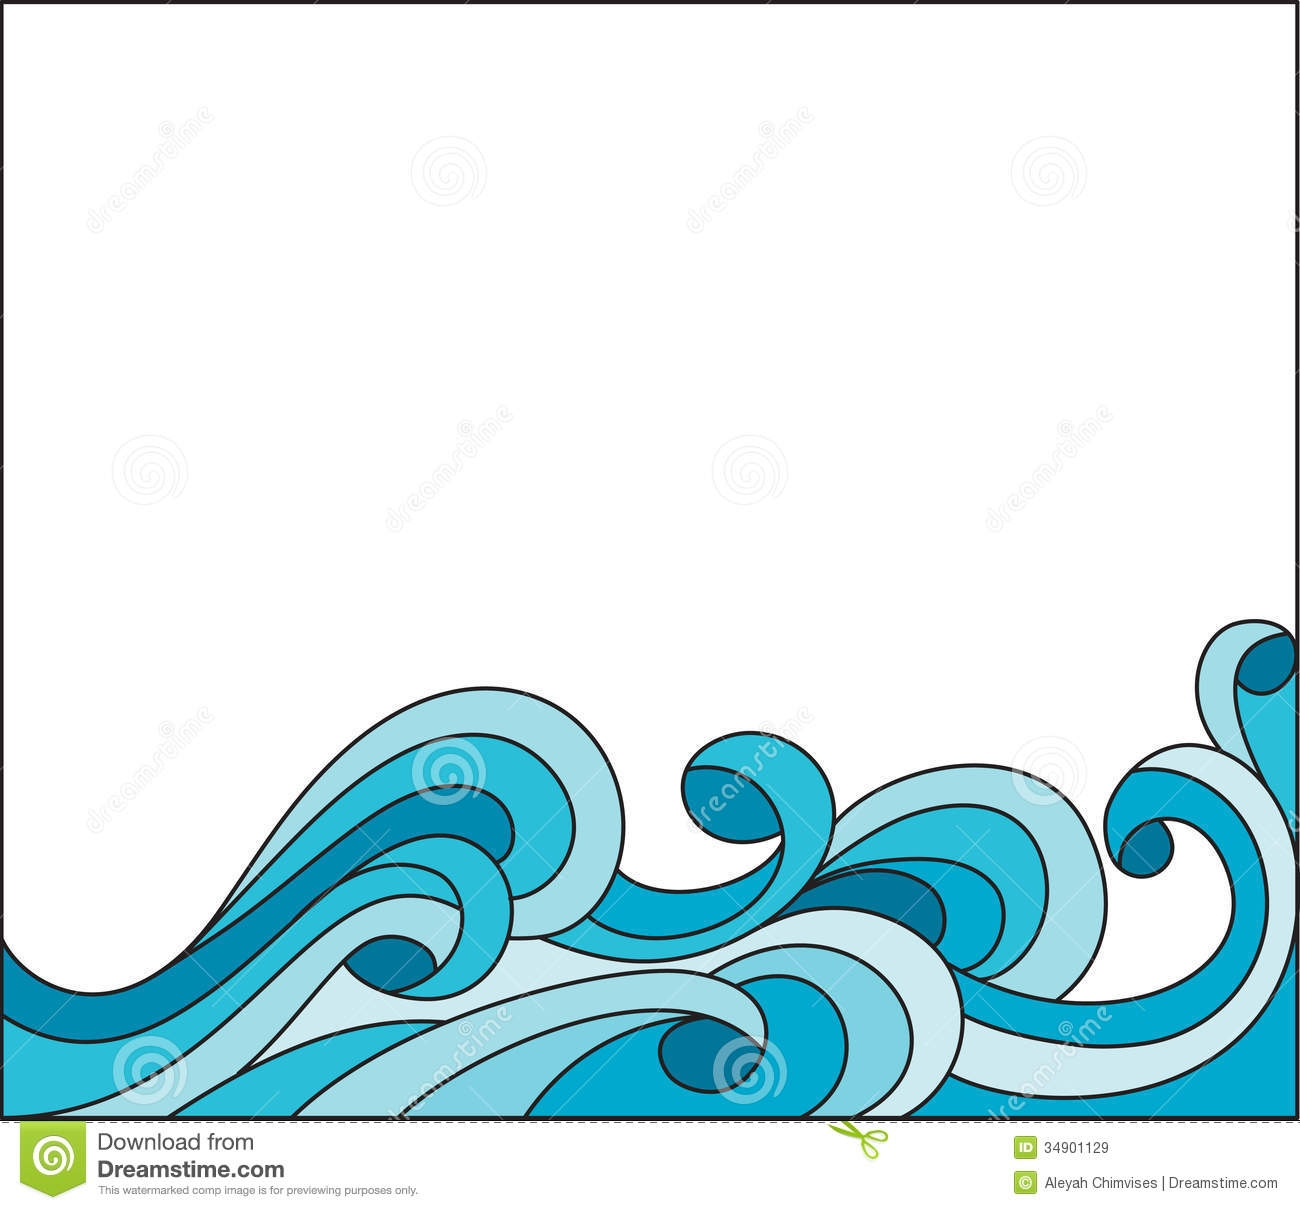 1300x1210 Waves Clipart Border Free